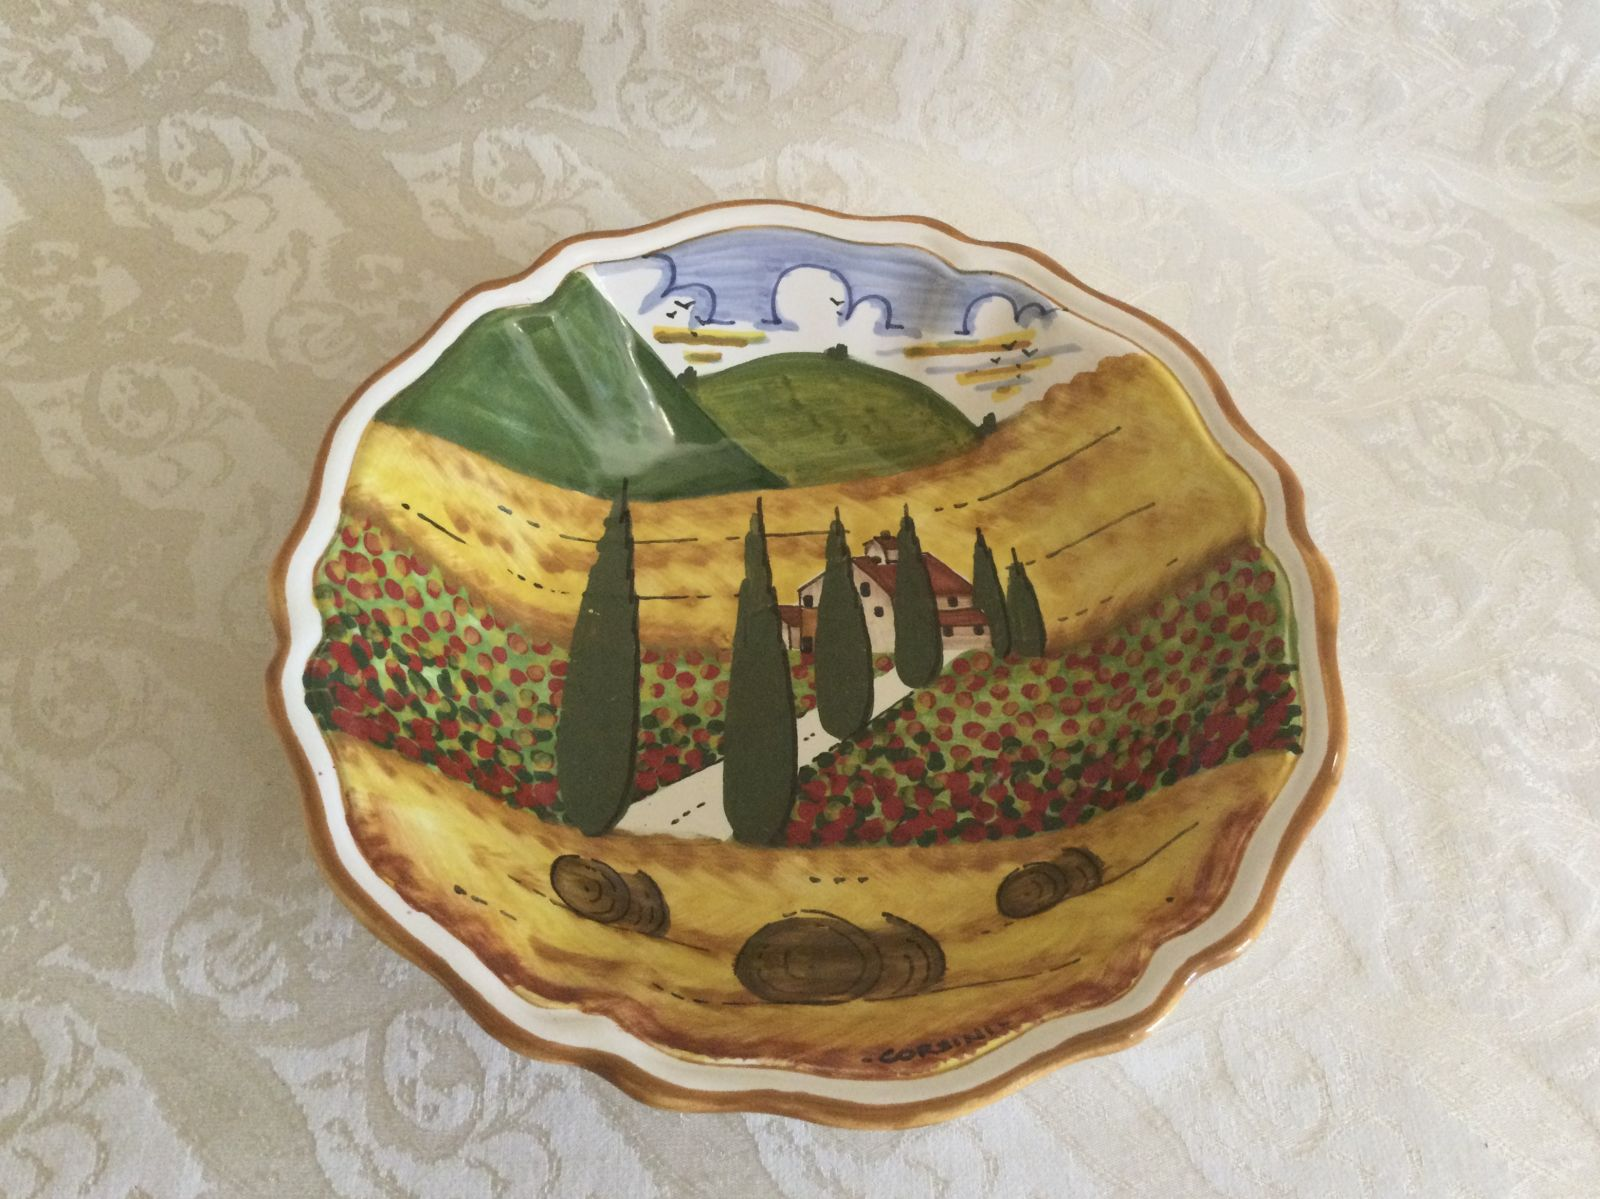 Soup plate cm 22x5 with tuscan landscape with road